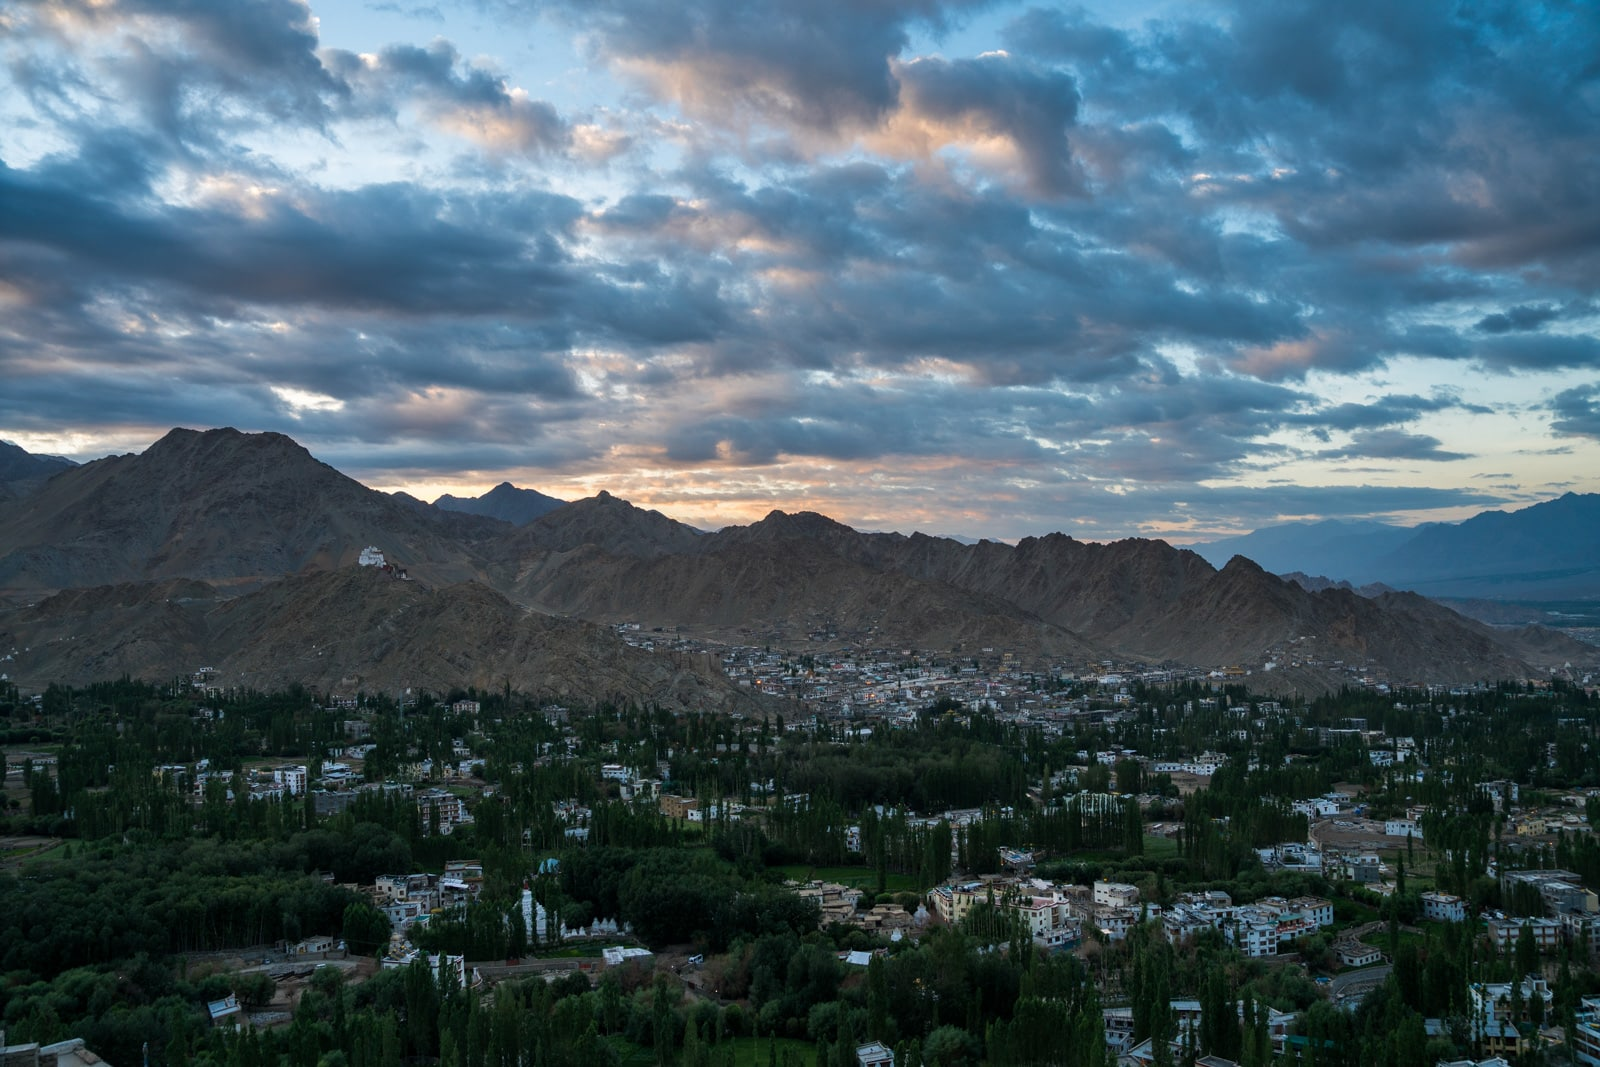 Hitchhiking the Leh - Manali highway - Leh at sunrise - Lost With Purpose travel blog